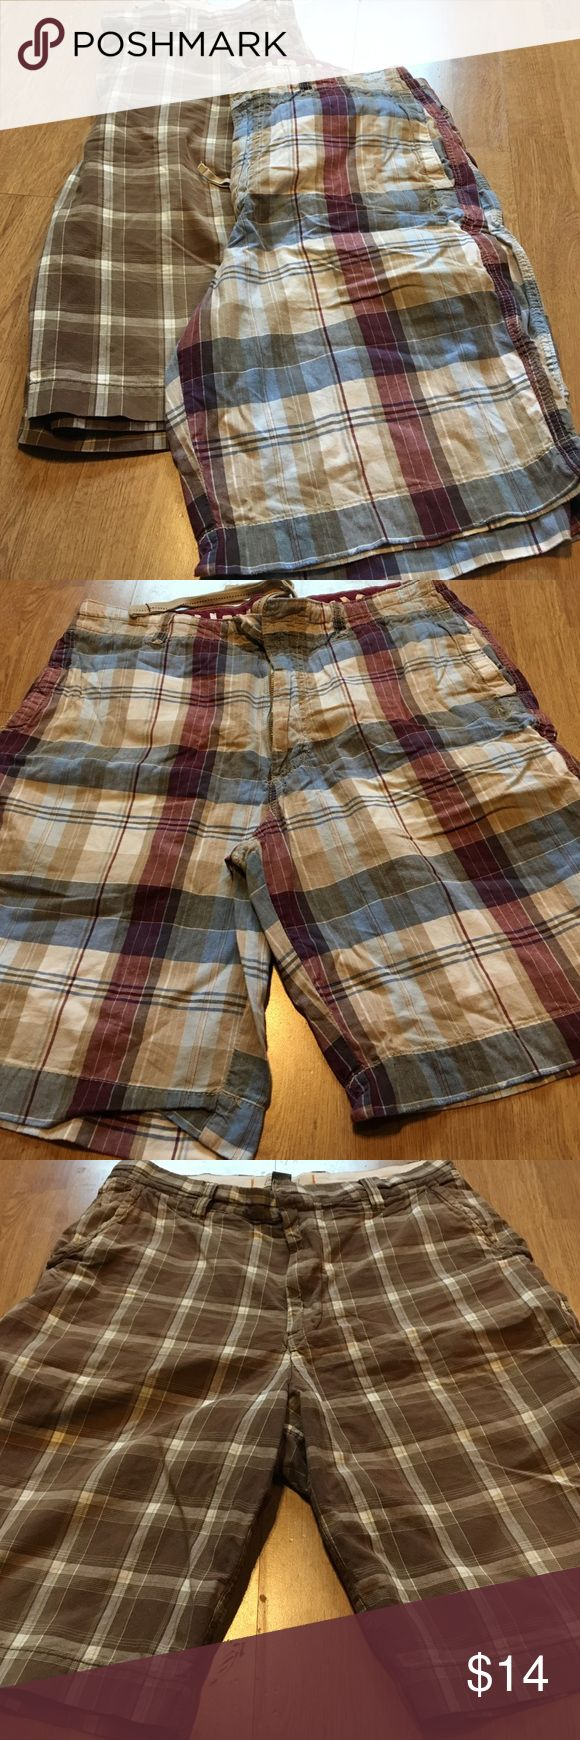 Two pairs of Men's plaid shorts! Size 34 Men's shorts- both fun plaids, urban pipeline and Union Bay! Good condition! UNIONBAY Shorts Flat Front